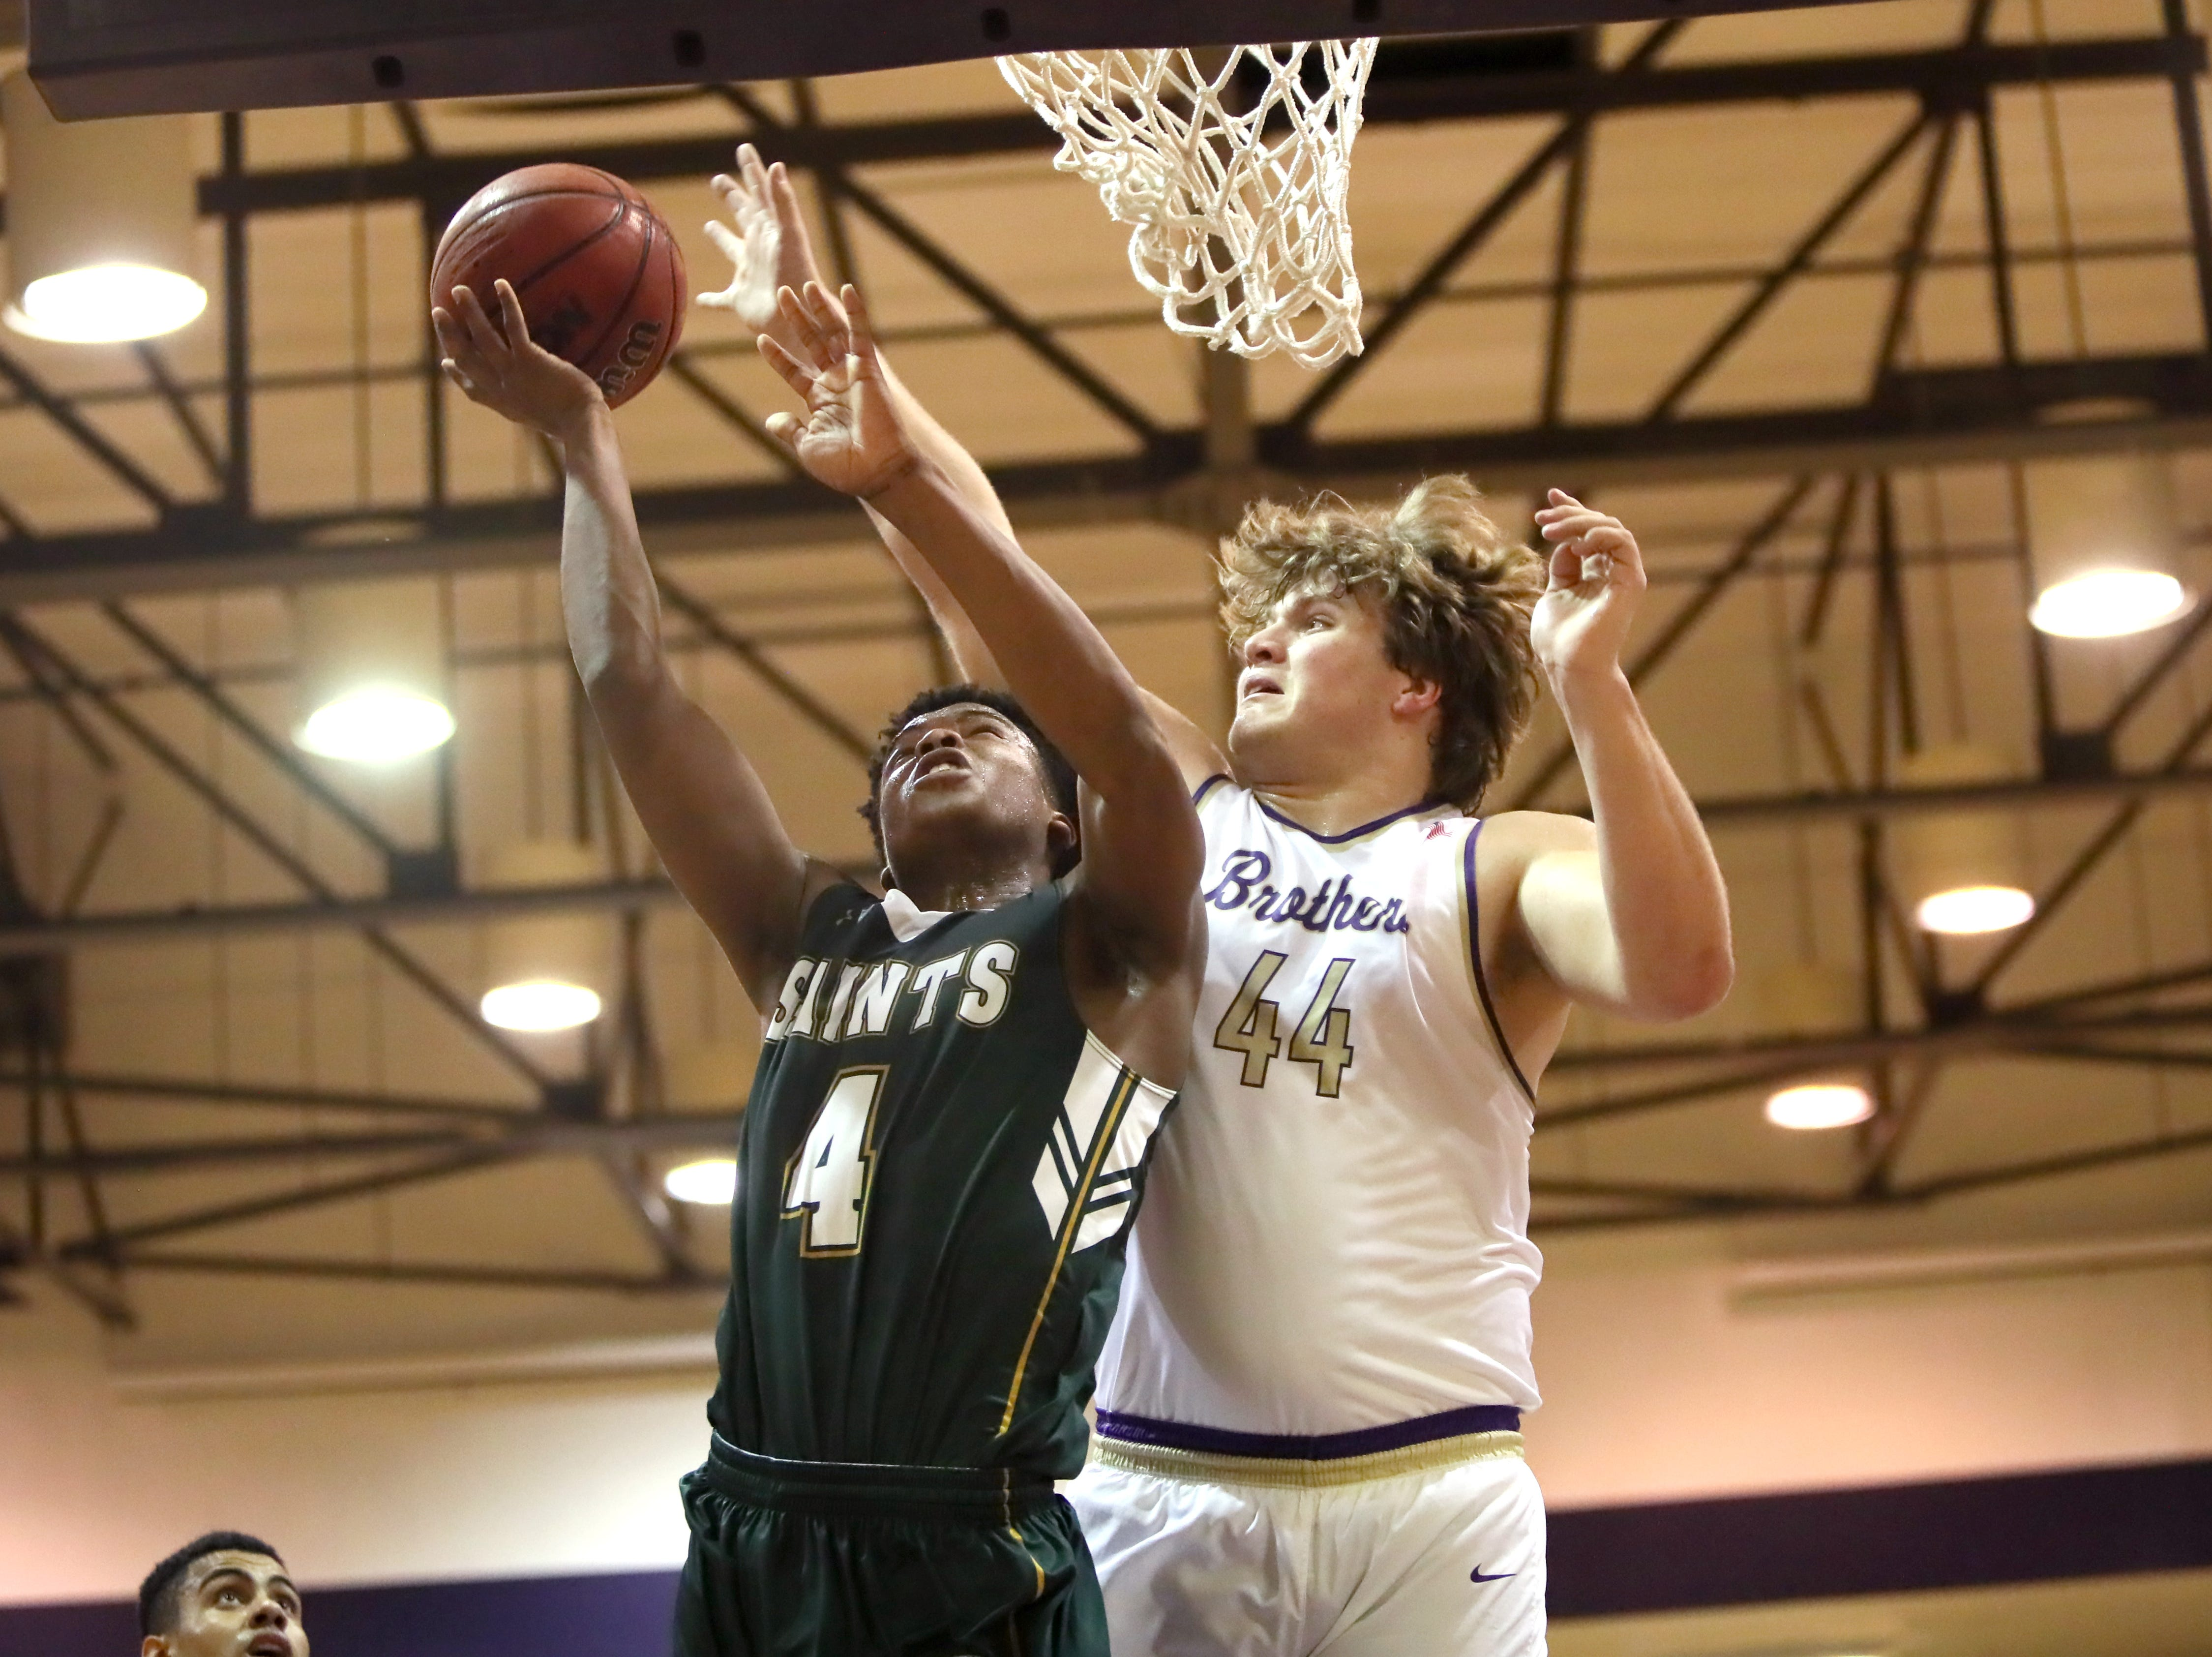 Briarcrest's shoots the ball over Christian Brothers' Bill Norton during their game at Christian Brothers High School on Friday, Jan. 11, 2019.